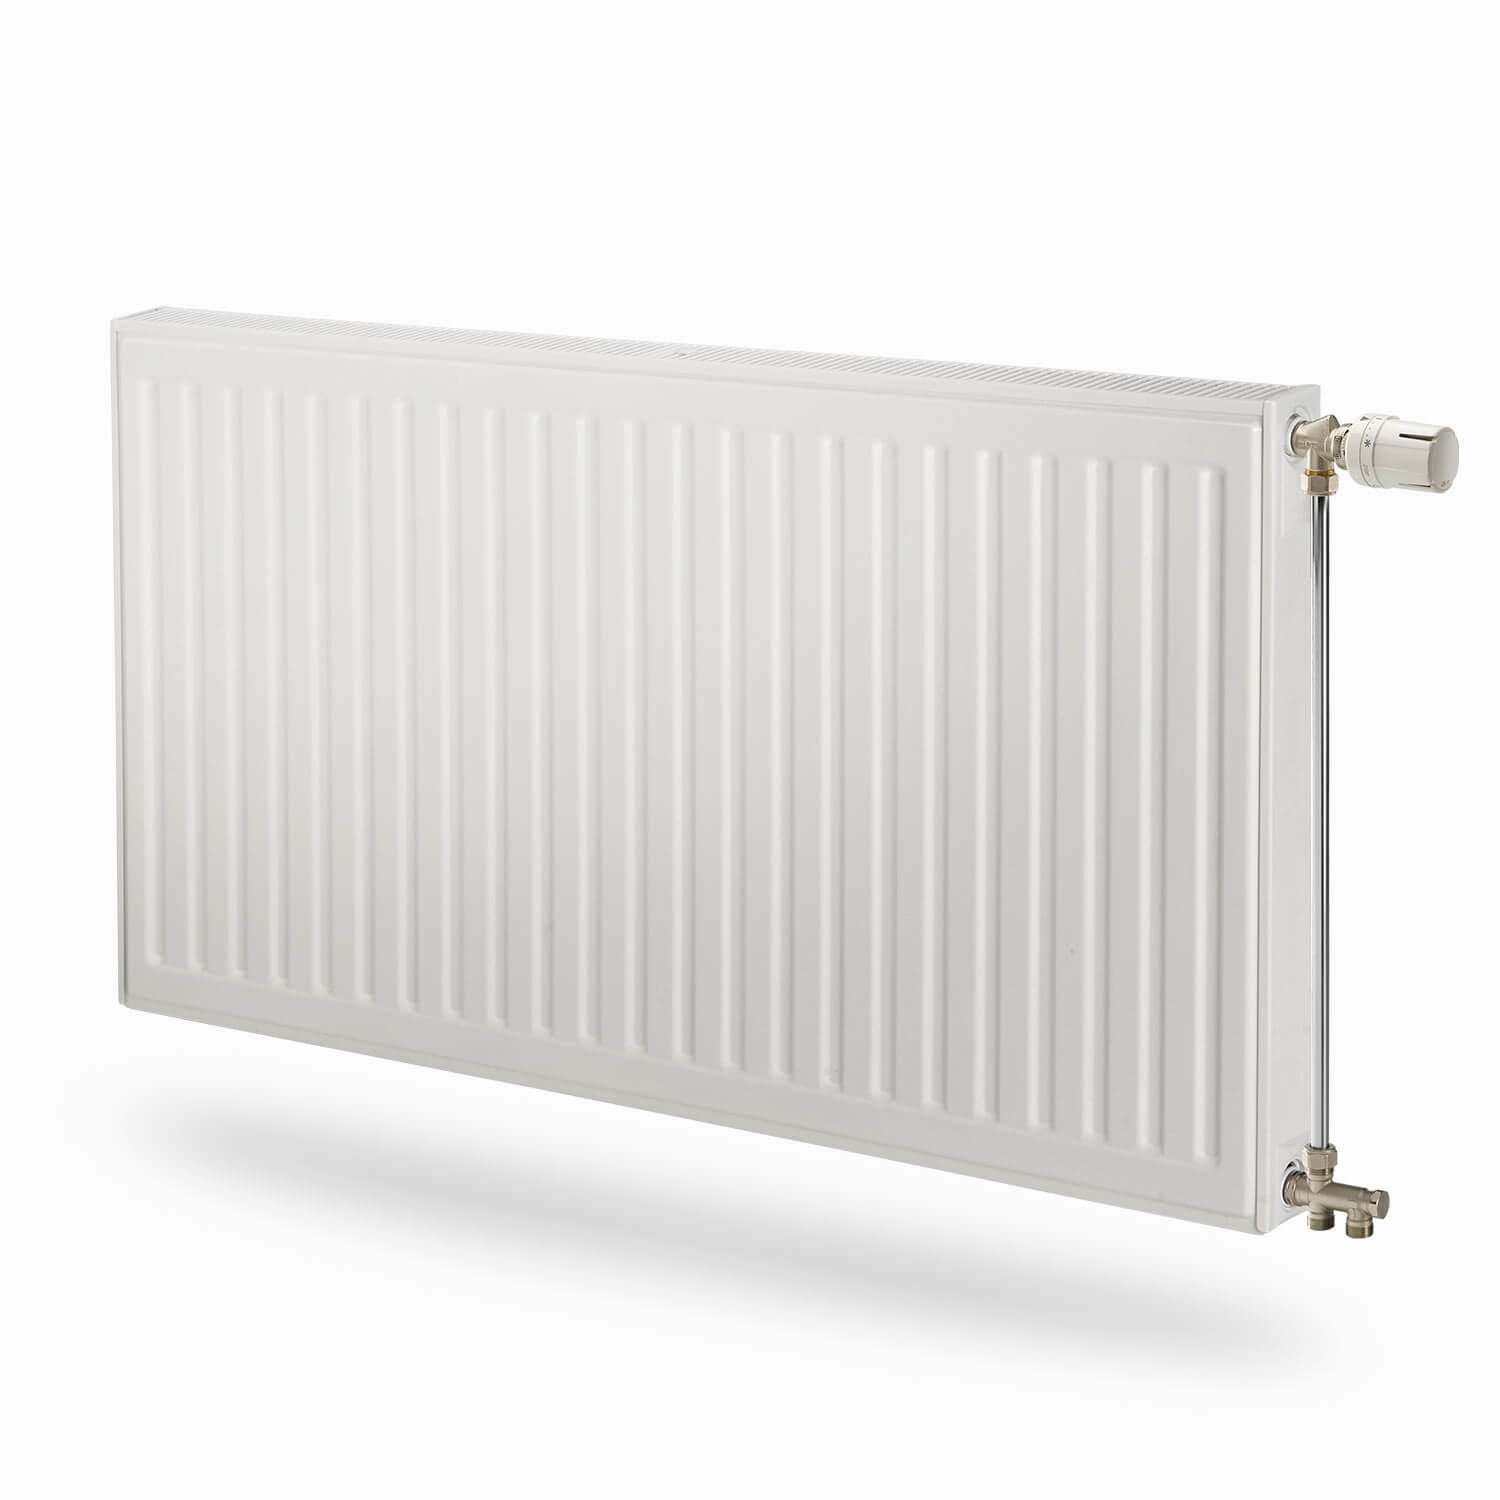 Radiator 40 Breed.Compact Radson